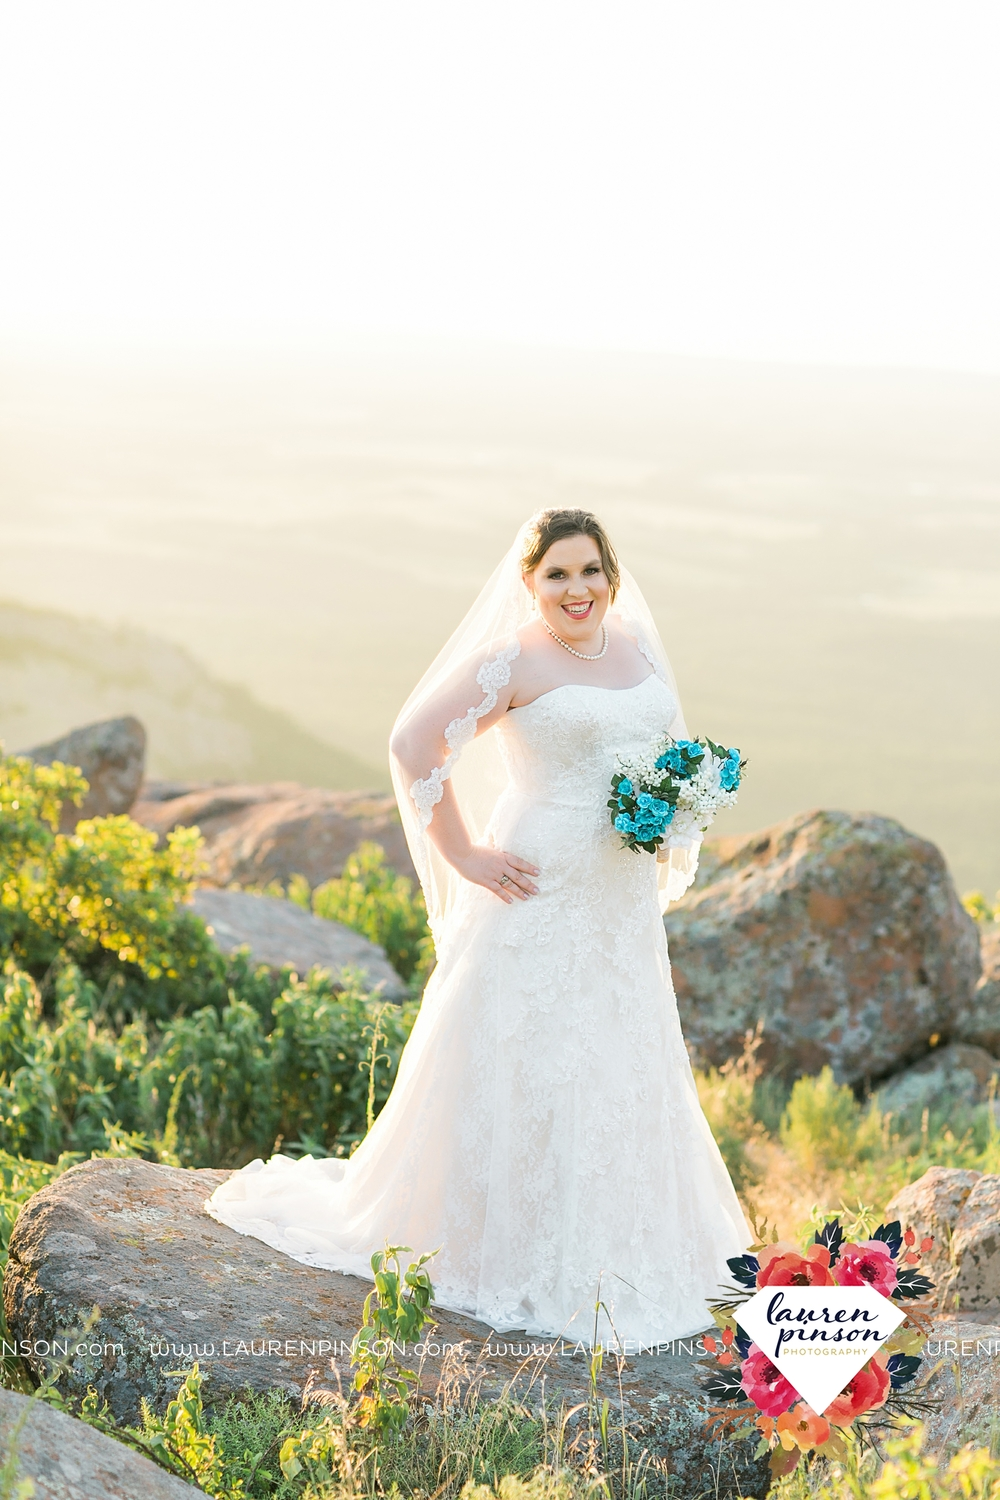 wichita-falls-texas-walters-lawton-oklahoma-wedding-photographer-wichita-mountains-bridal-portraits_3177.jpg